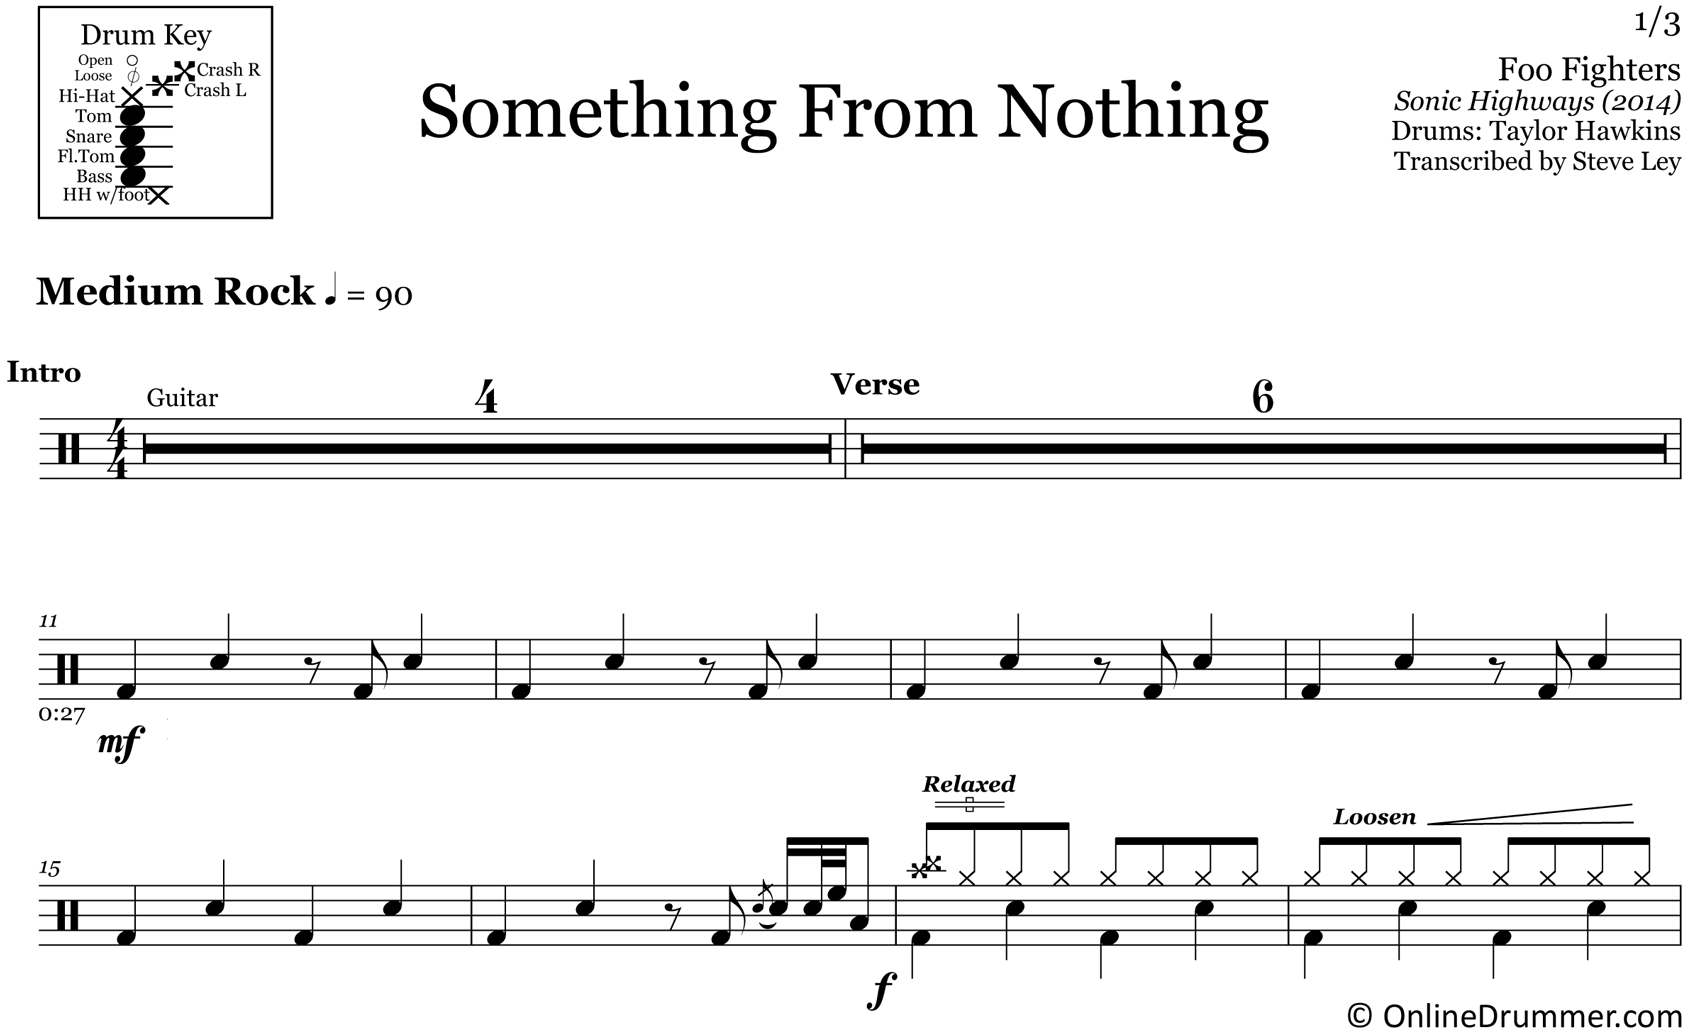 Something From Nothing - Foo Fighters - Drum Sheet Music